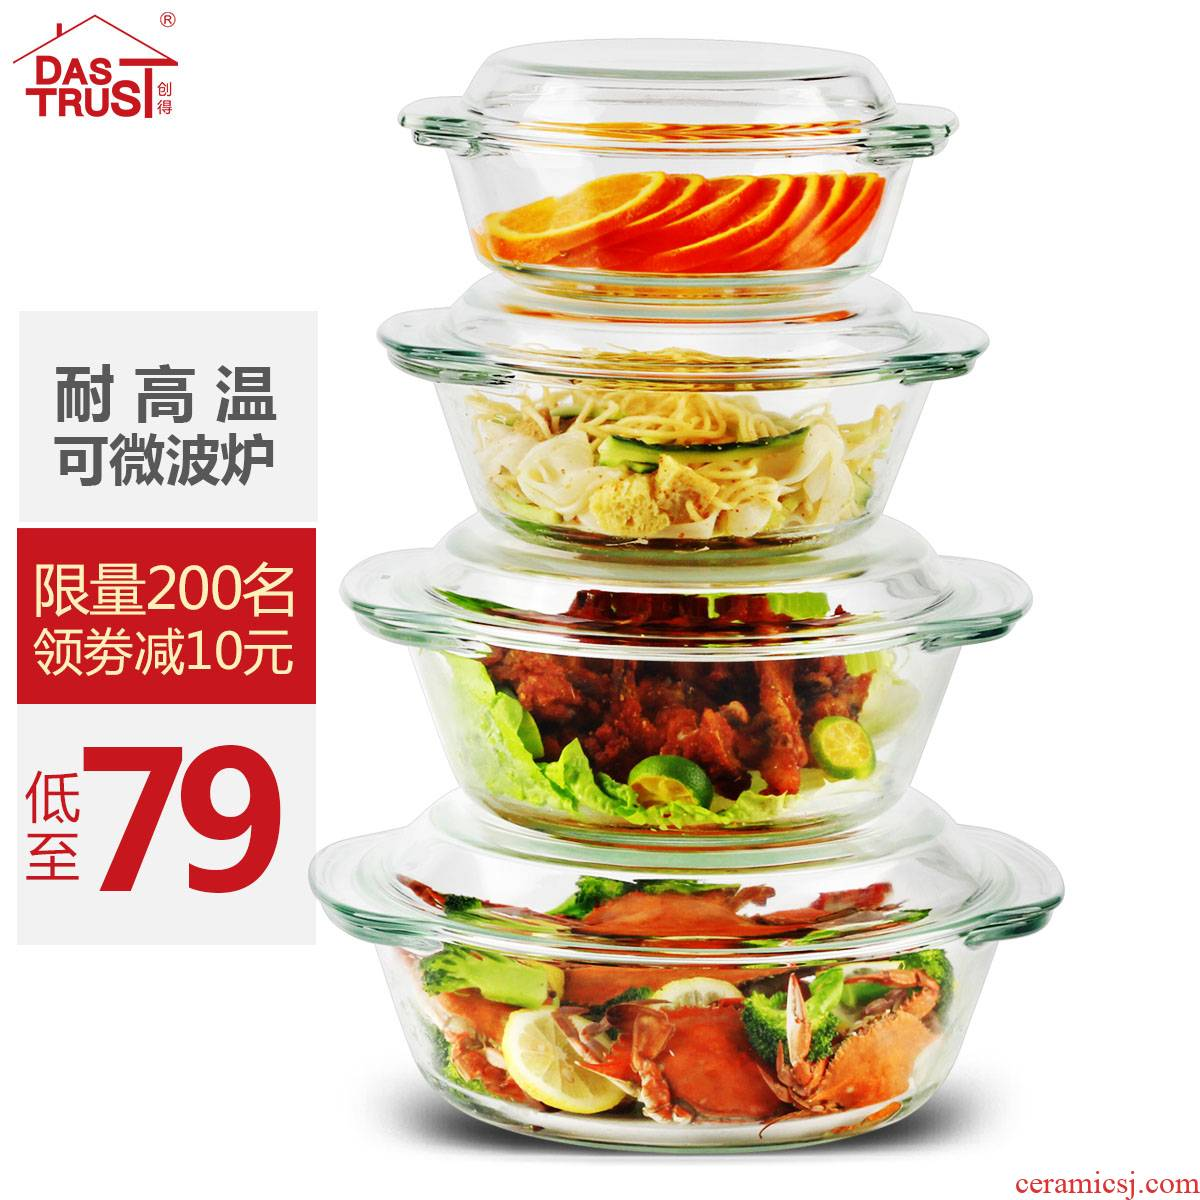 Gen heat - resistant glass bowl household suit glass plate tableware, informs the for microwave oven pan boil for 4 times